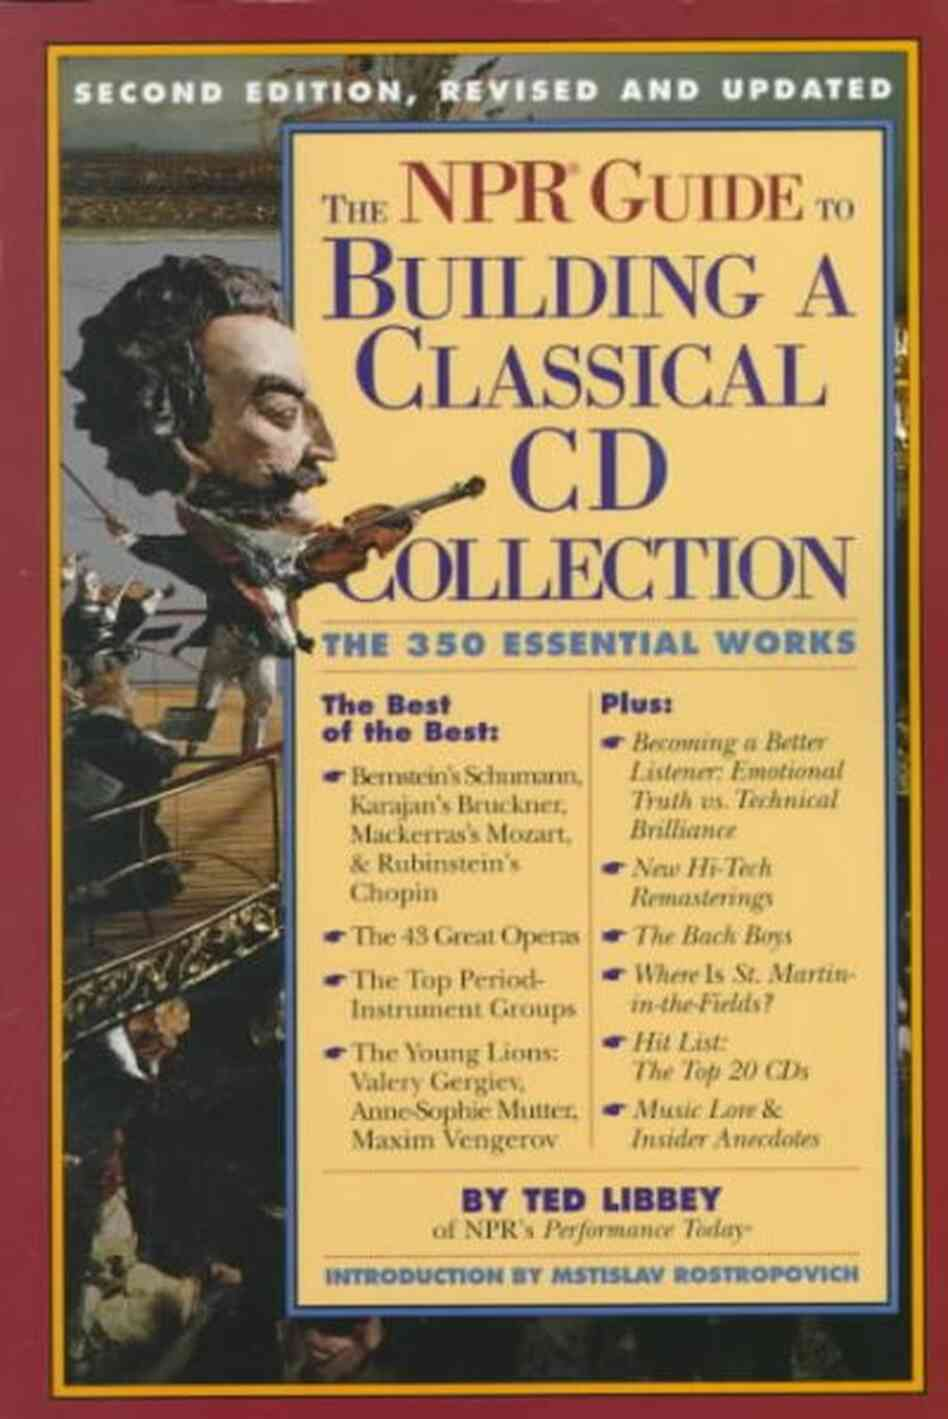 The Npr Guide to Building a Classical Cd Collection